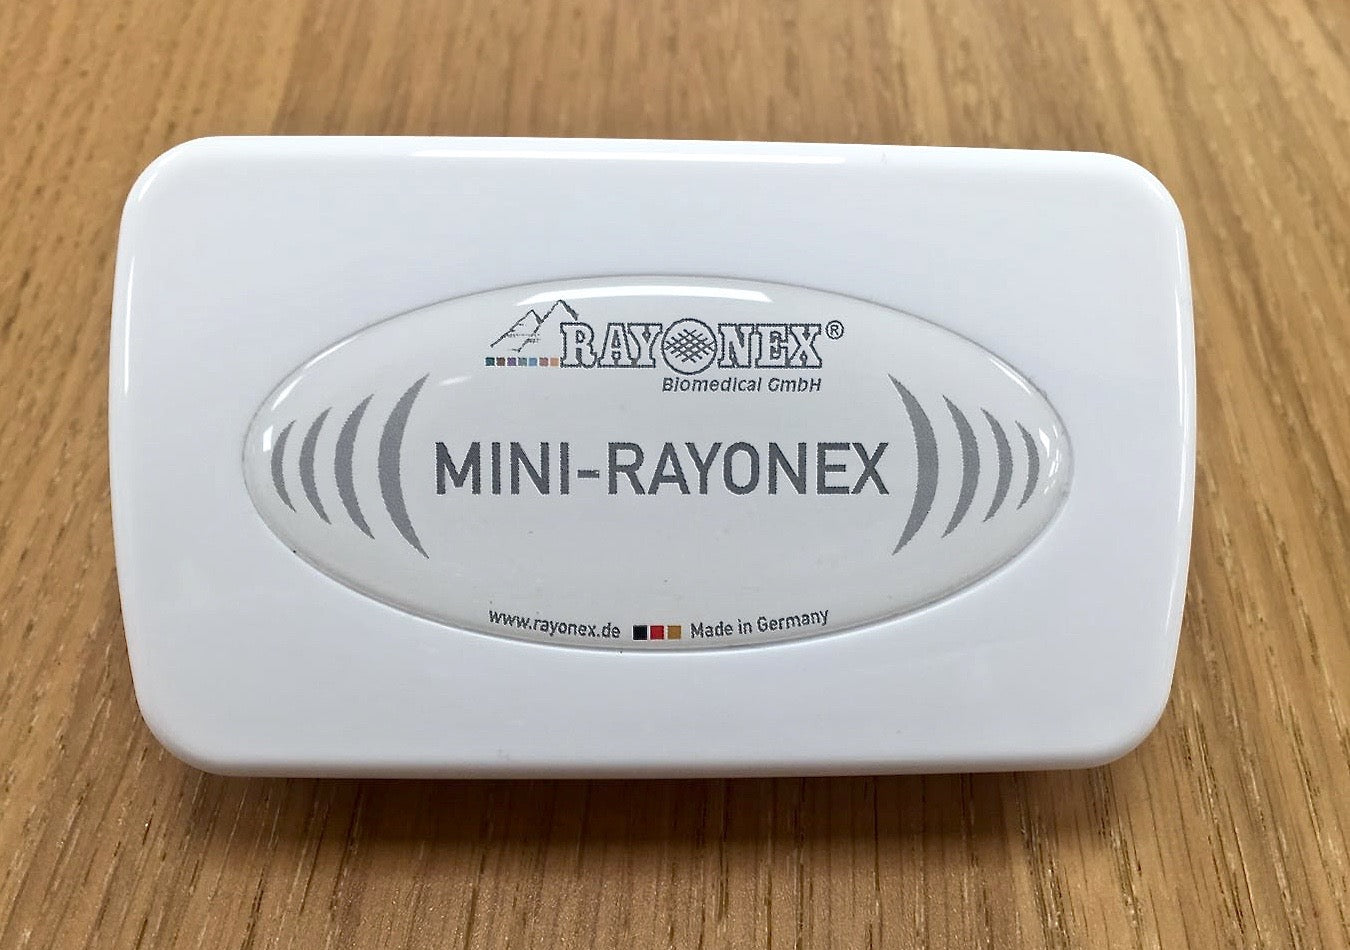 迷你We能量 Mini-Rayonex (for energy, calmness and wound healing)